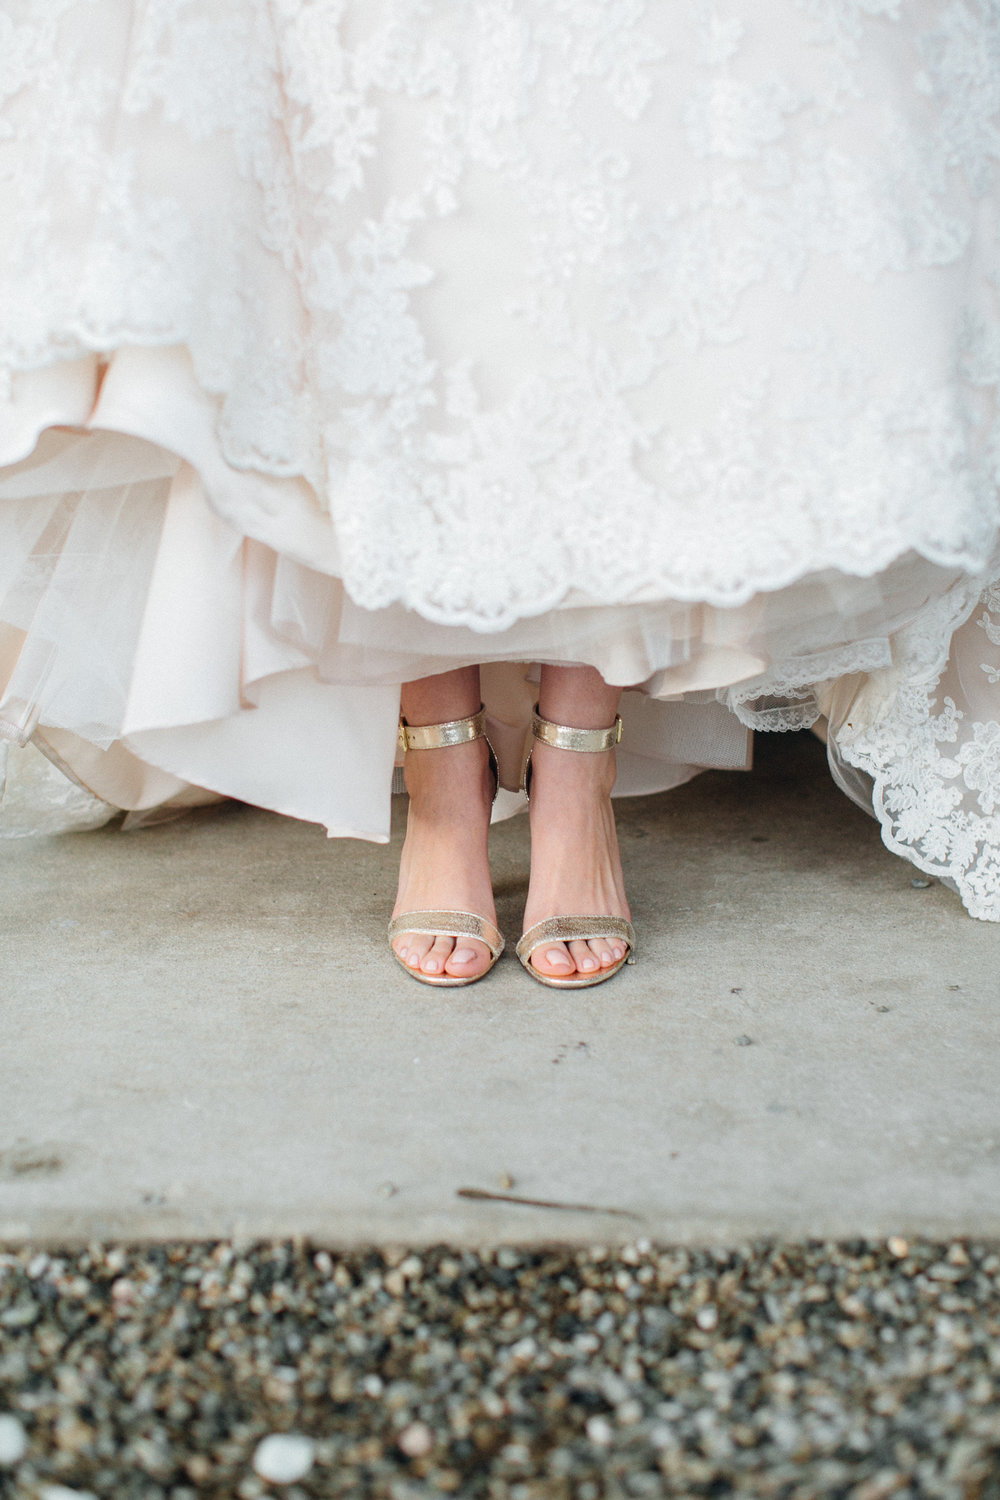 4039e-elegant-country-charm-ranch-wedding-gorgeous-gold-bridal-heels.jpg